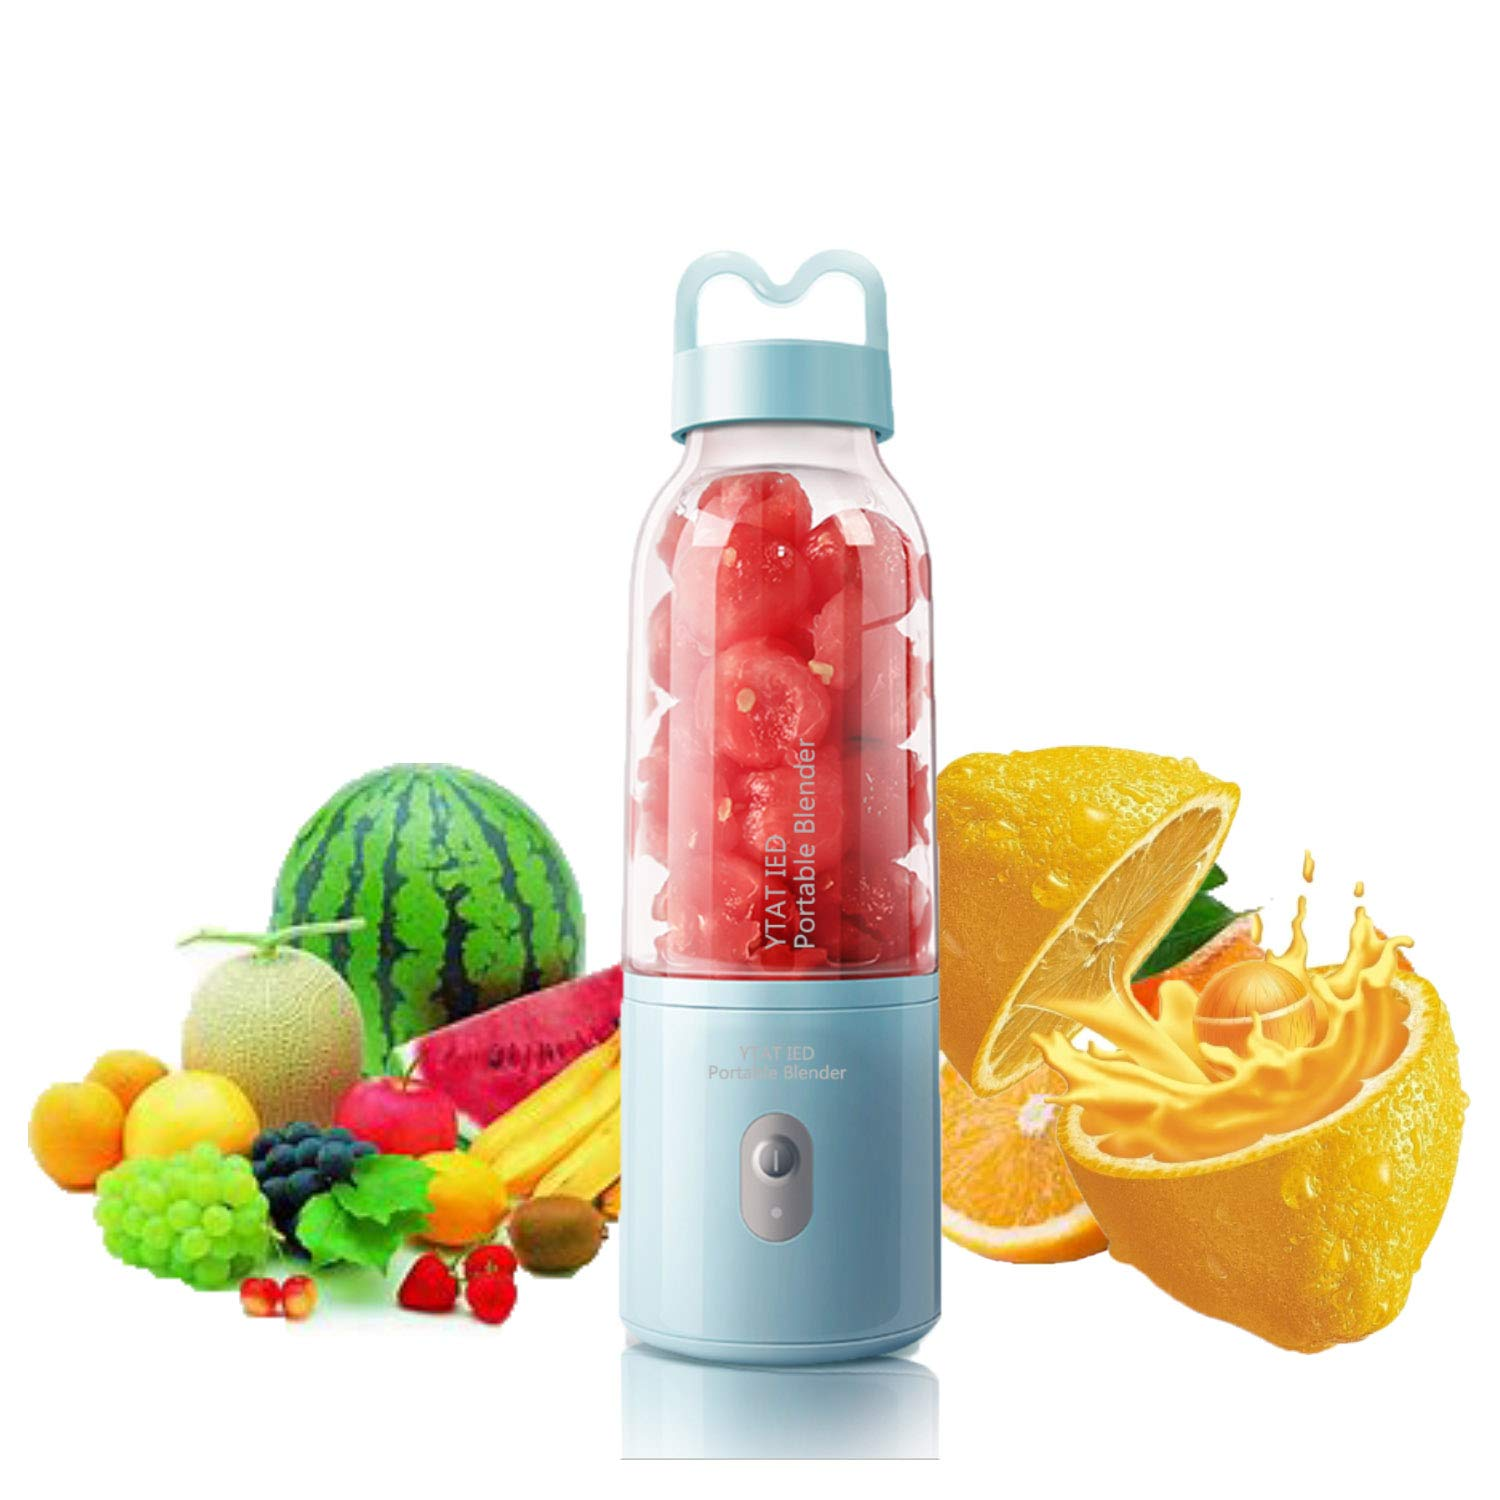 【2019 Upgraded Version】Portable Blender YTAT Mini Smoothie Blender USB Personal Blender 500ml Juicer Cup Fruit Mixer with 4000mAh Rechargeable Battery, BPA Free (blue) by YTAT IED